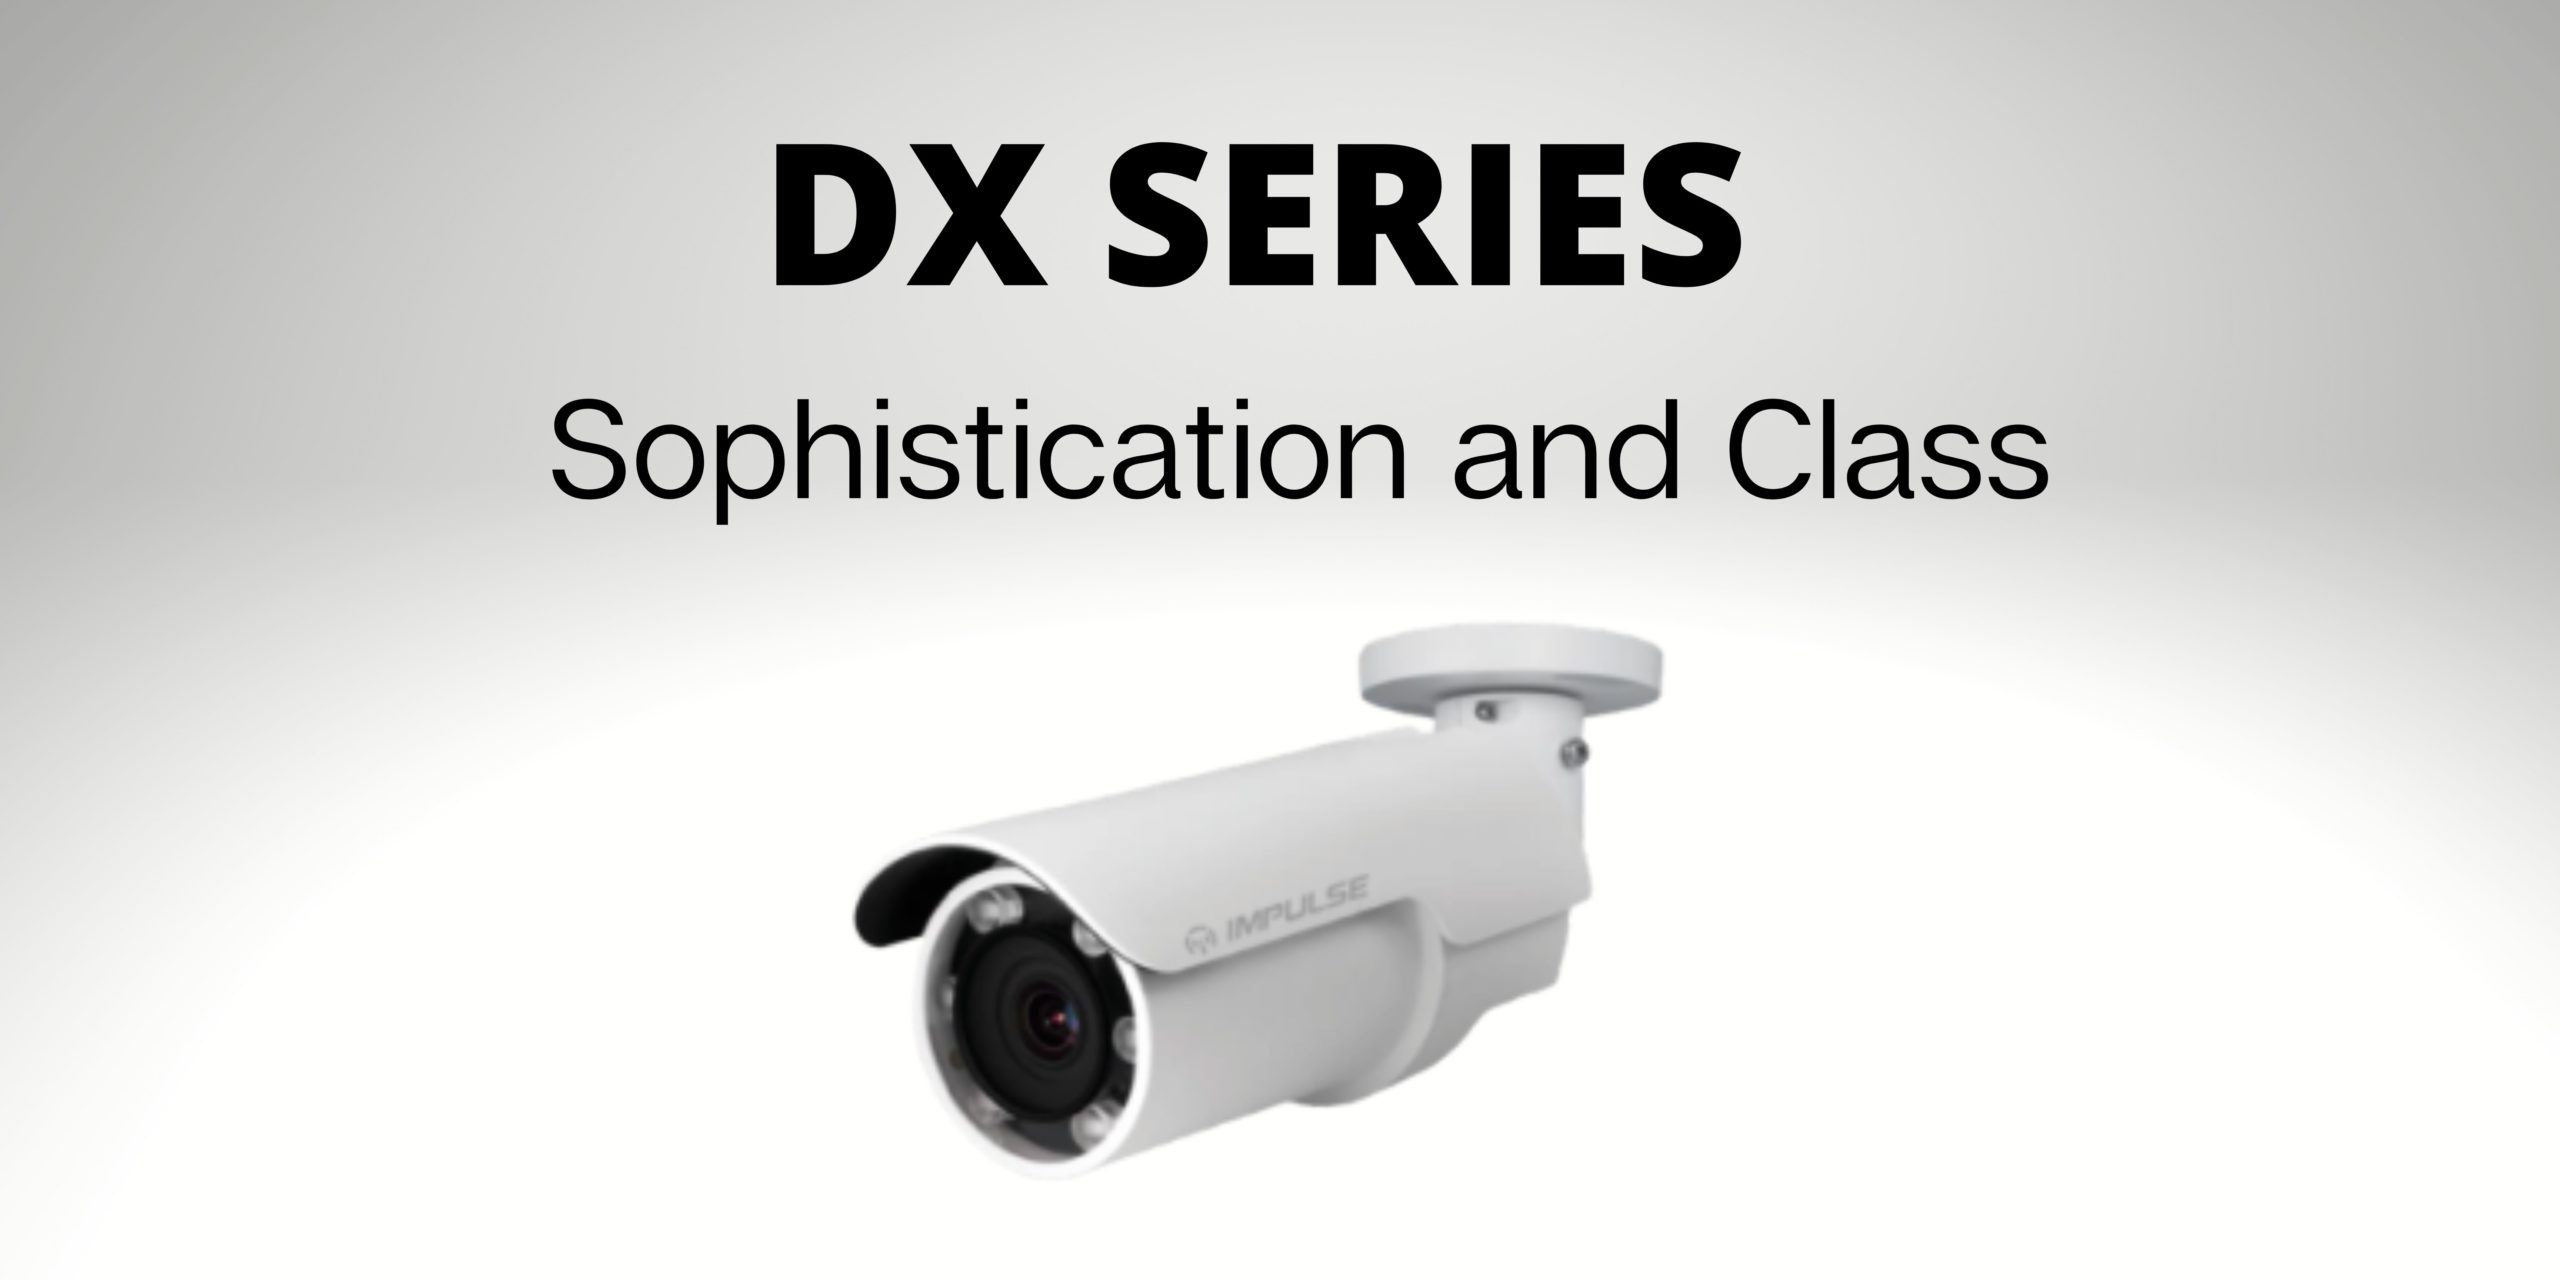 Impulse CCTV & PoE Switching l DX Series Bullet - Sophistication and Class